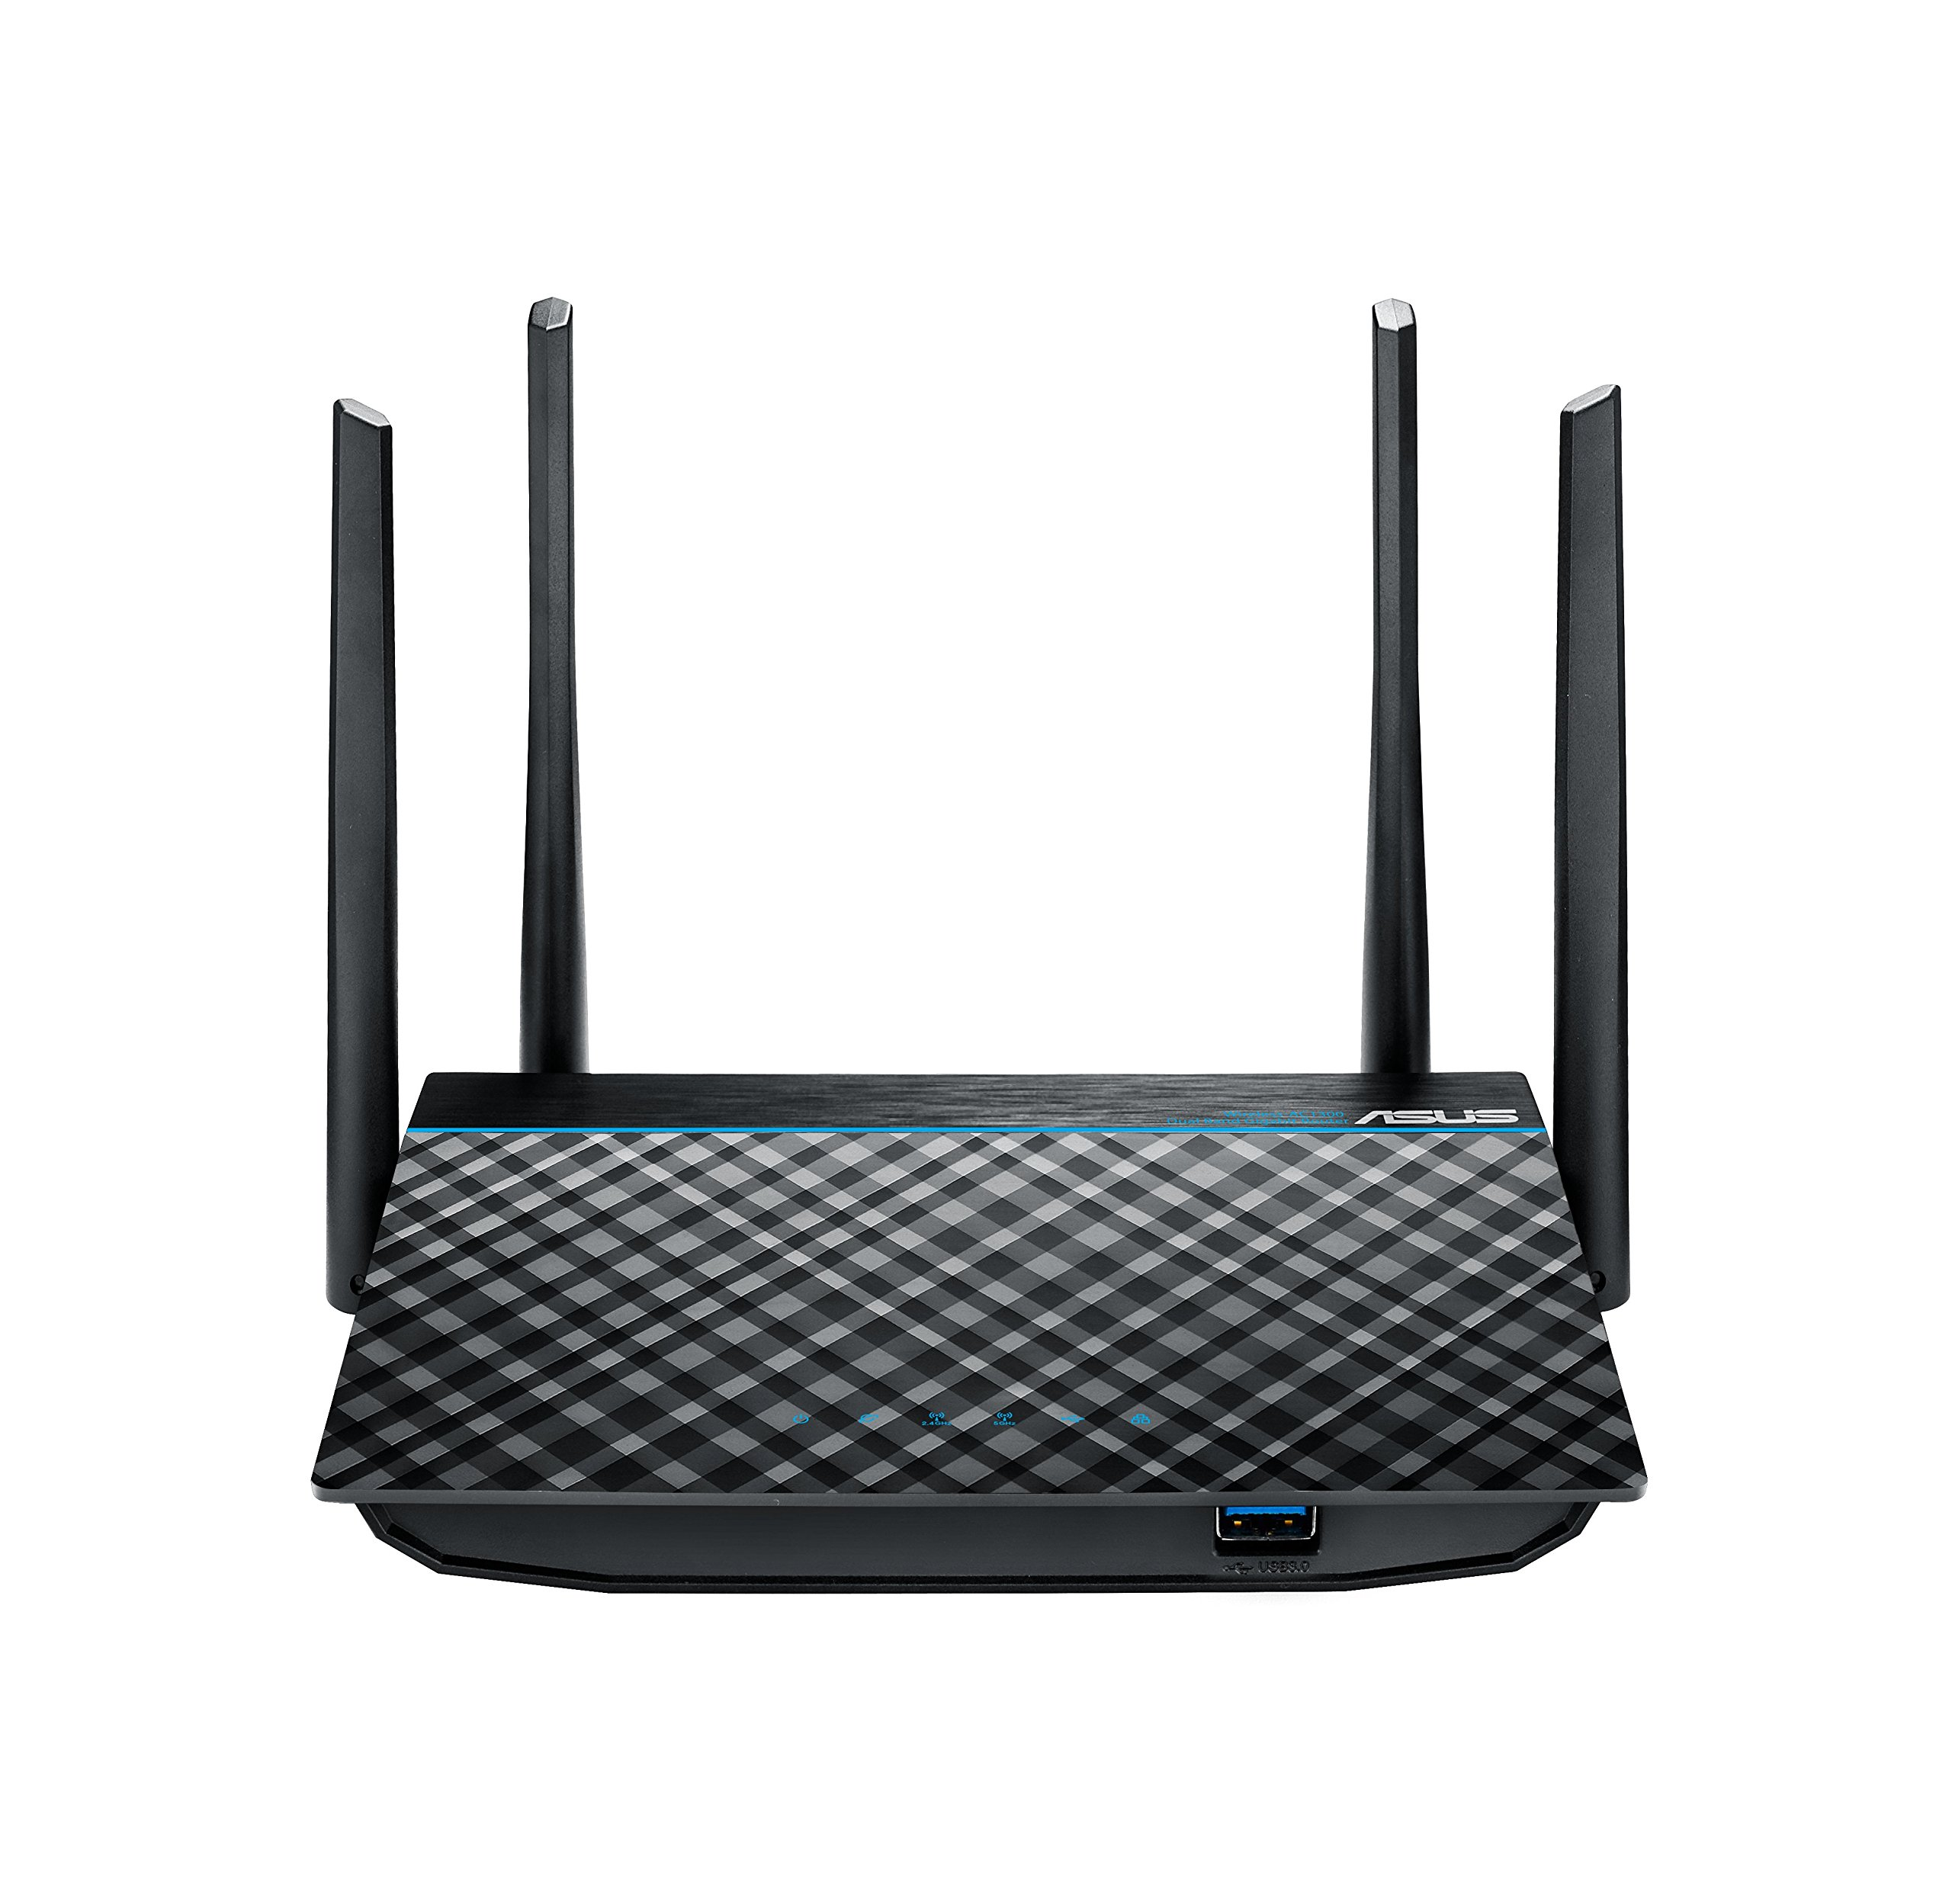 ASUS Dual-Band 2x2 AC1300 Super-Fast Wifi 4-port Gigabit Router with MU-MIMO and USB 3.0 (RT-ACRH13) by Asus